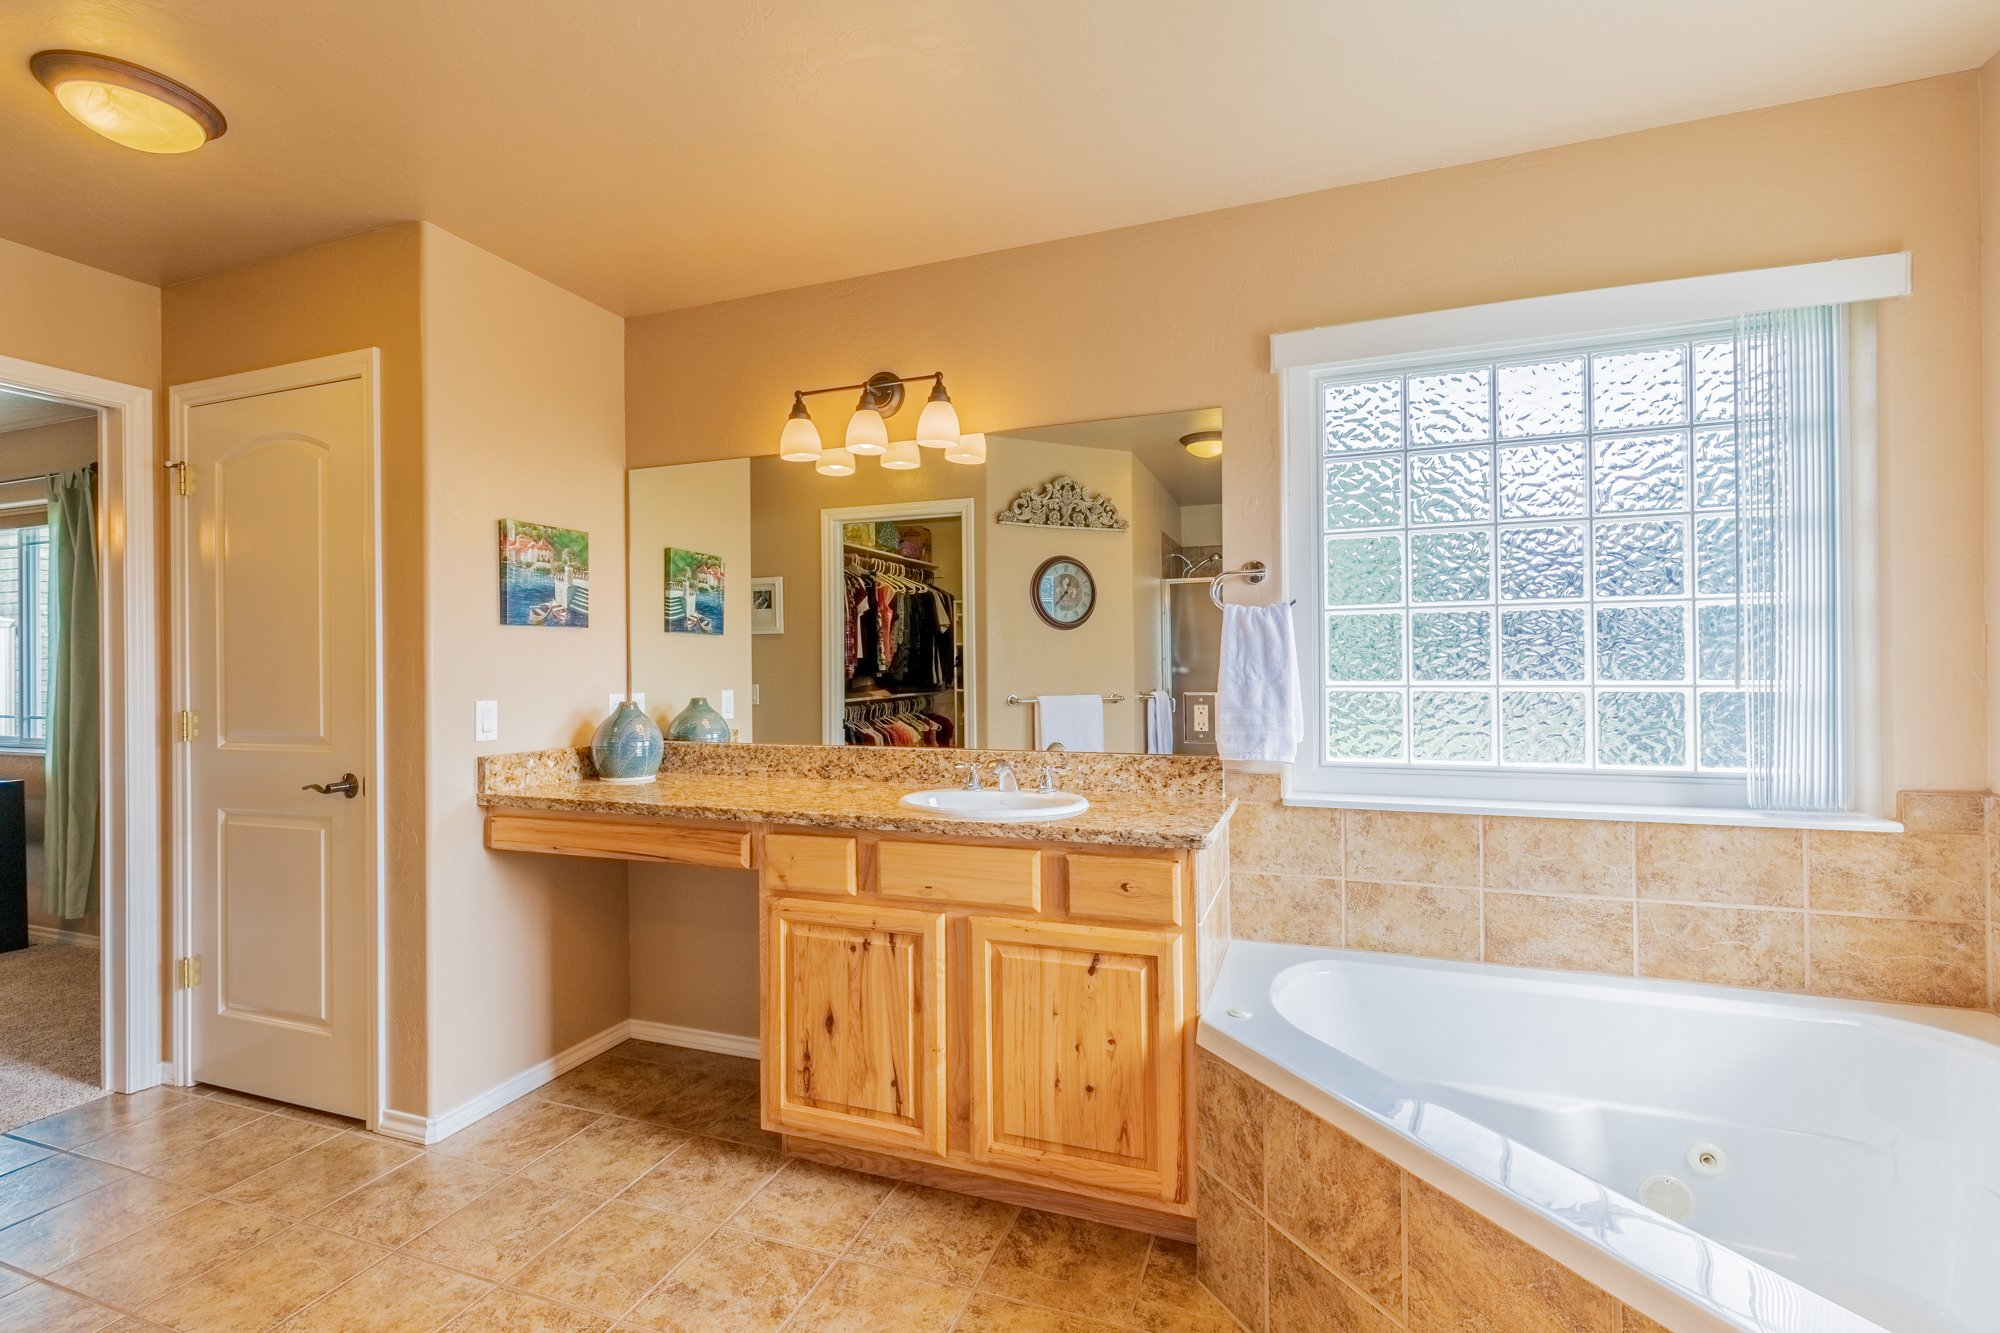 Main Bathroom with Walk In Closet - 2941 Ivy Dr Montrose, CO 81401 - Atha Team Real Estate